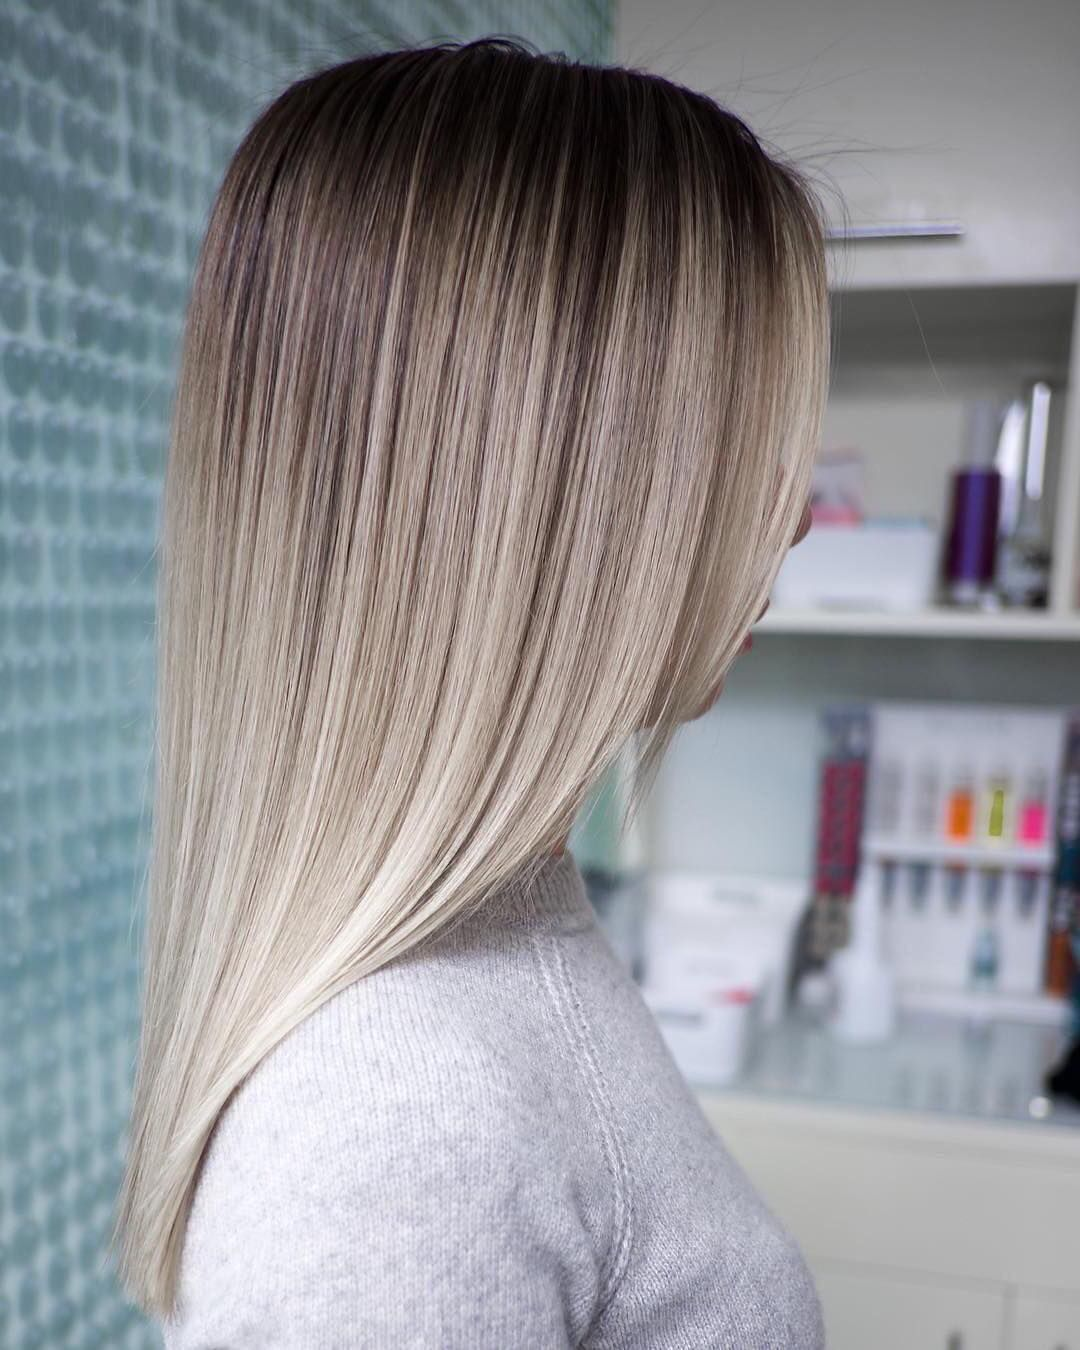 10 Balayage-Ombre Long Hair Styles from Subtle to